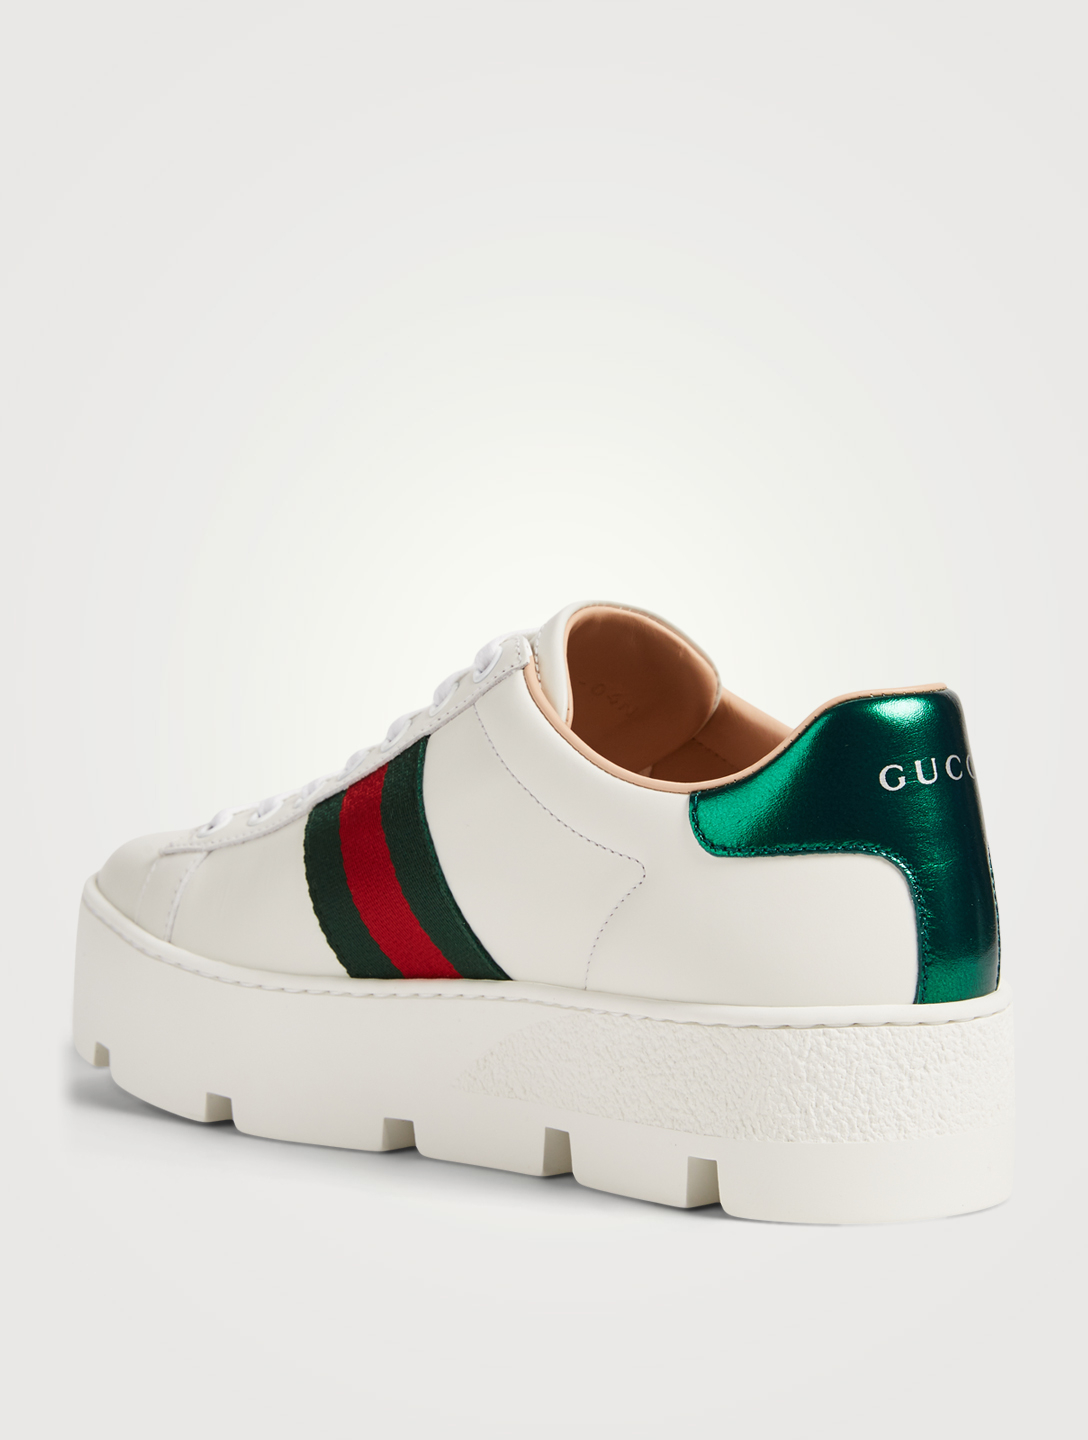 GUCCI Ace Leather Platform Sneakers With Embroidered Bee Women's White